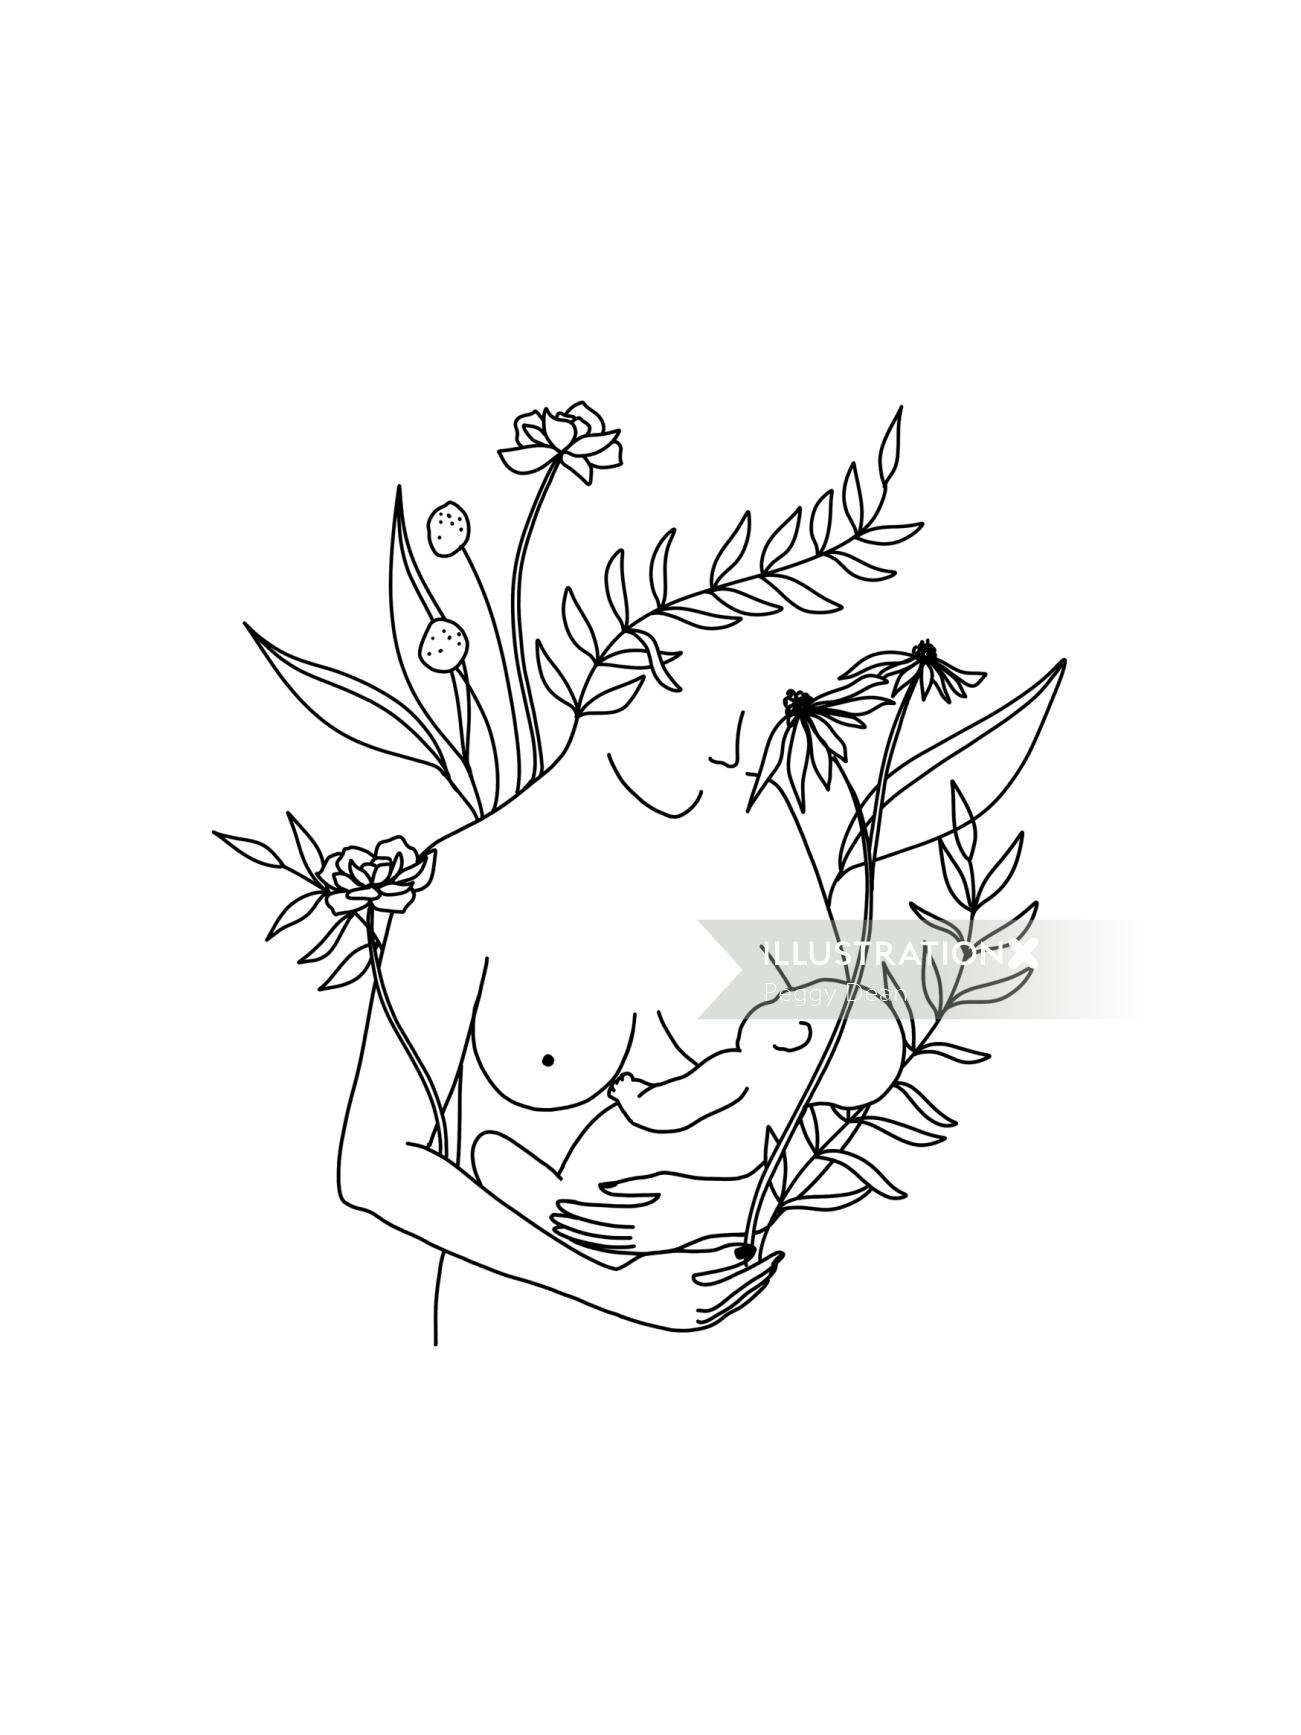 Line drawing of mother breastfeeding surrounded by nature